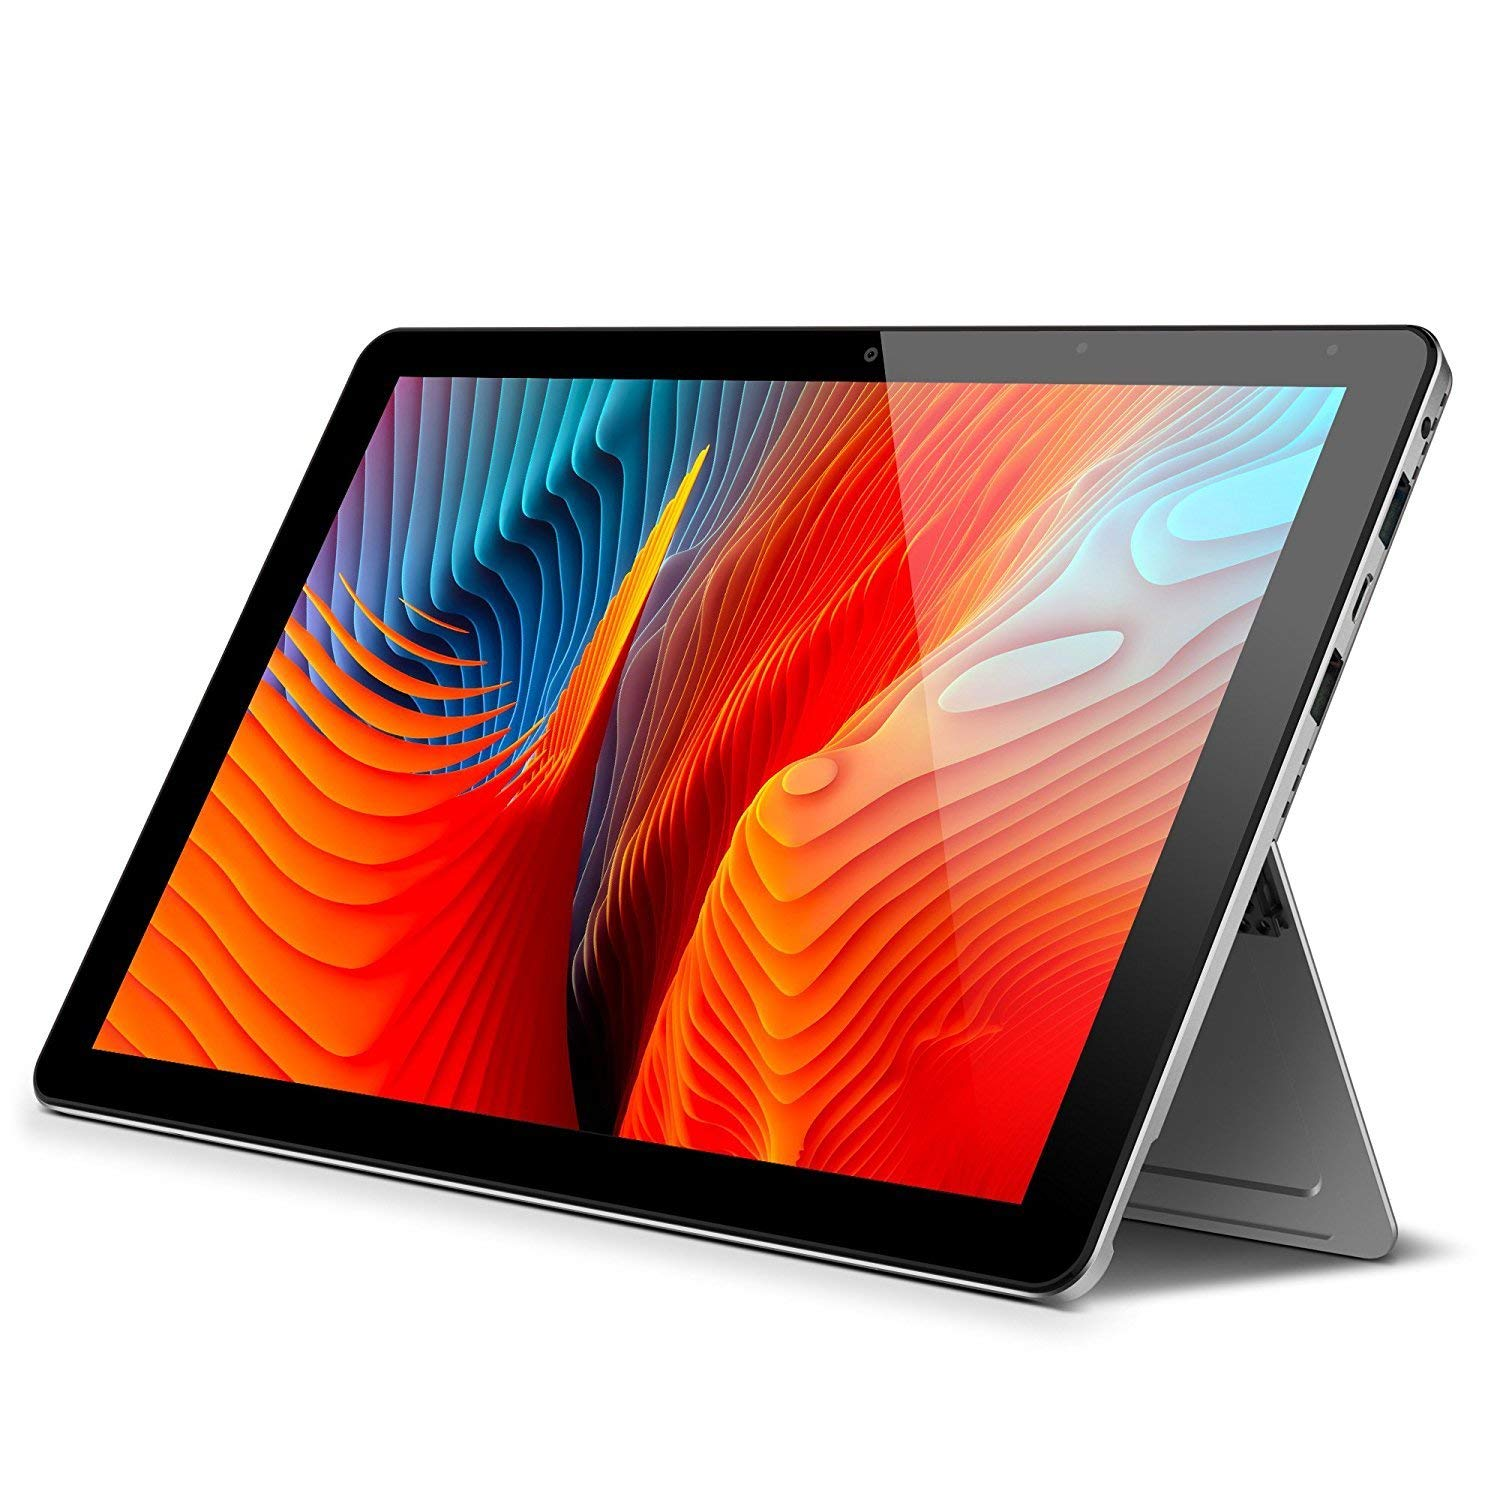 CHUWI Surbook Mini 10.8 inch 2 in 1 Windows Tablet Windows 10 OS 2-in-1 Laptop(Intel Celeron N3450 Quad Core up to 2.2GHz 1920x1280 IPS 4GB RAM 64GB ROM,Type C, WiFi)(without keyboard and pen)